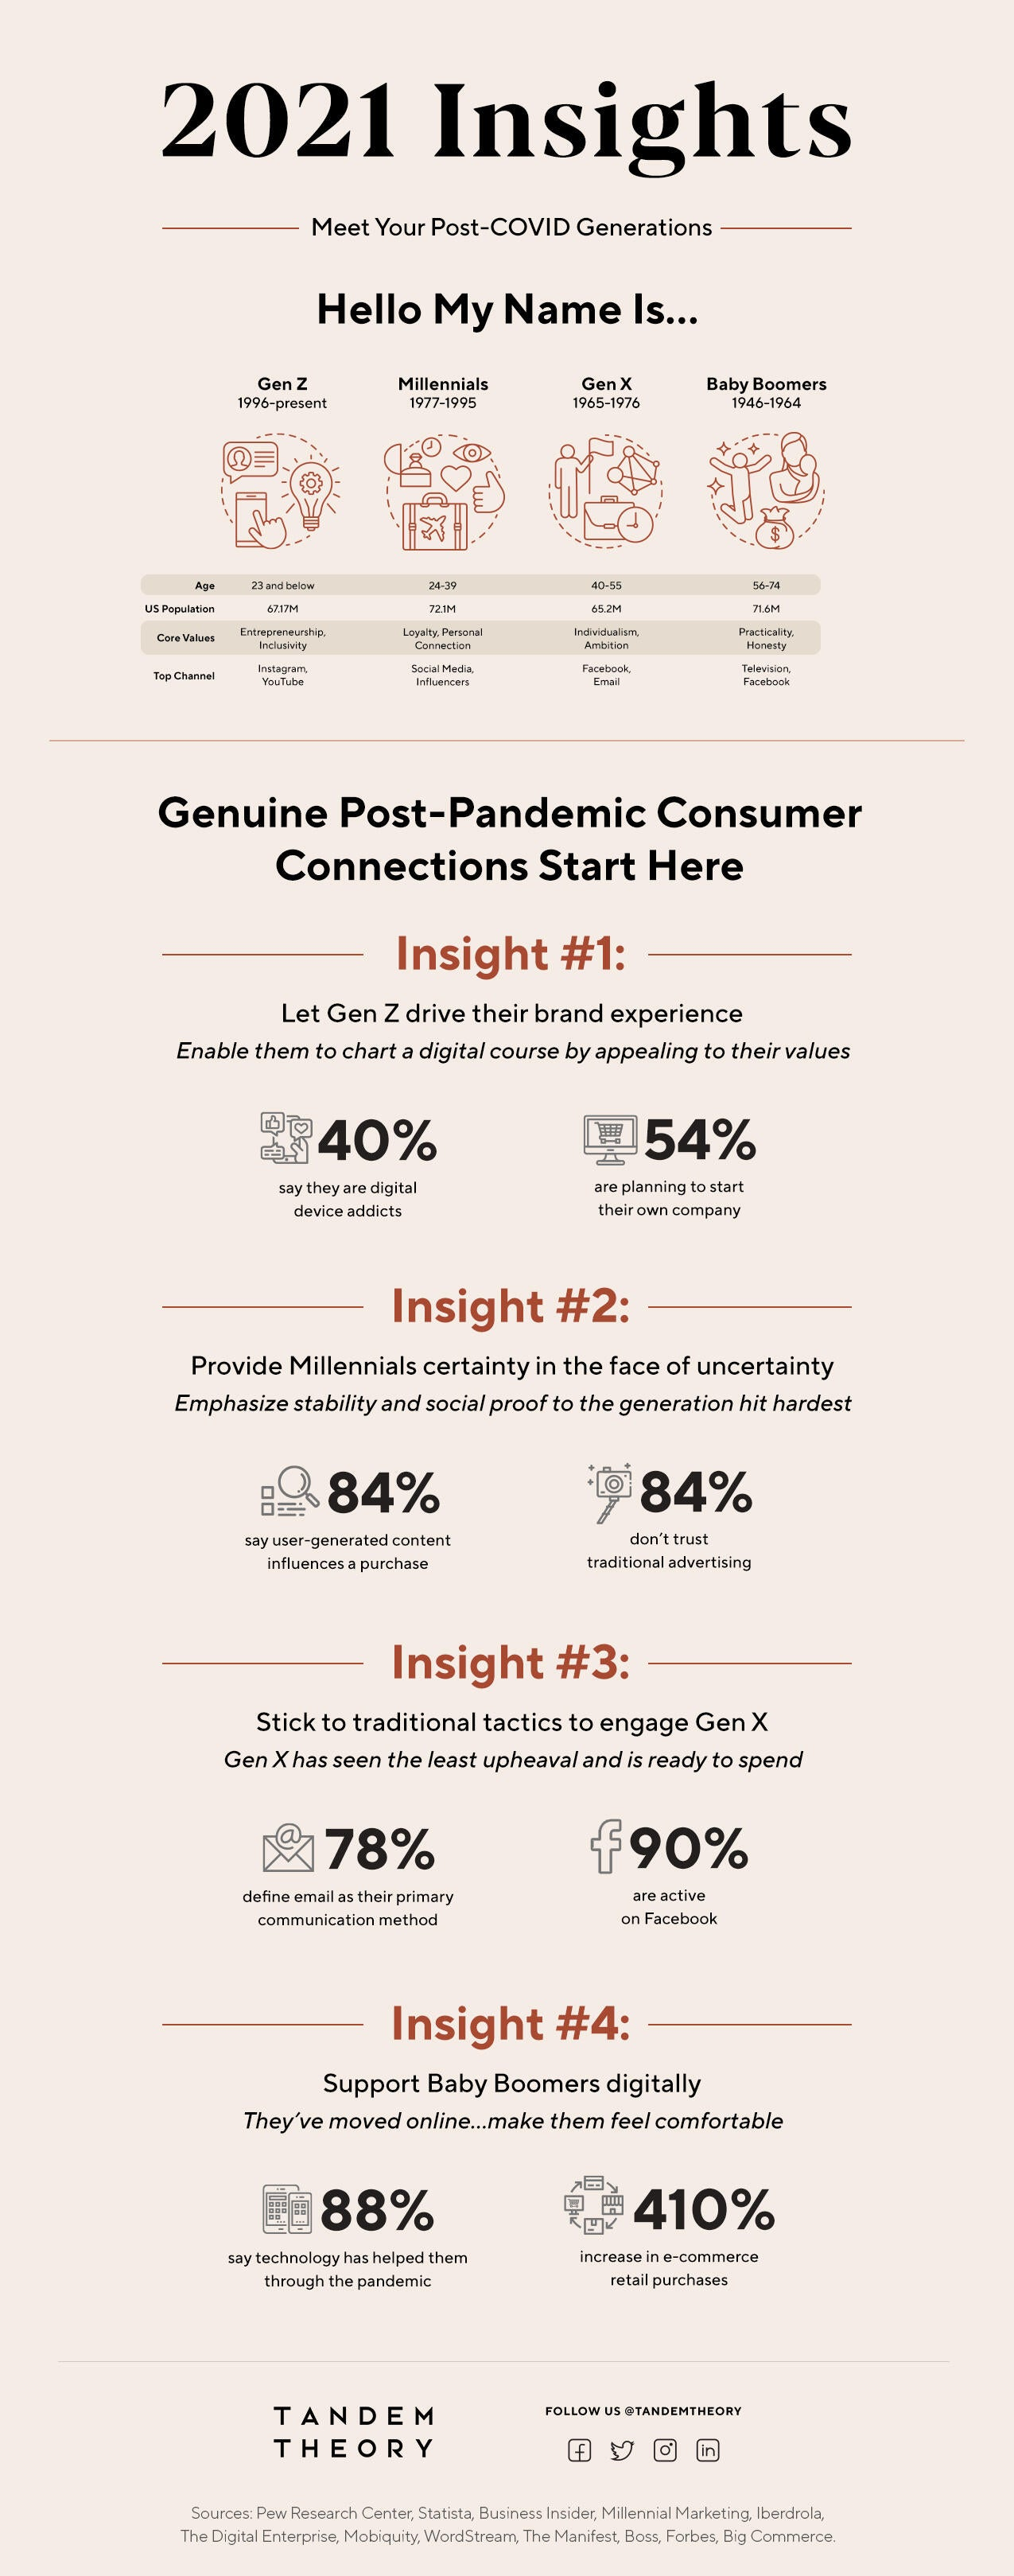 2021 Insights: How COVID-19 Changed Consumer Behavior Image